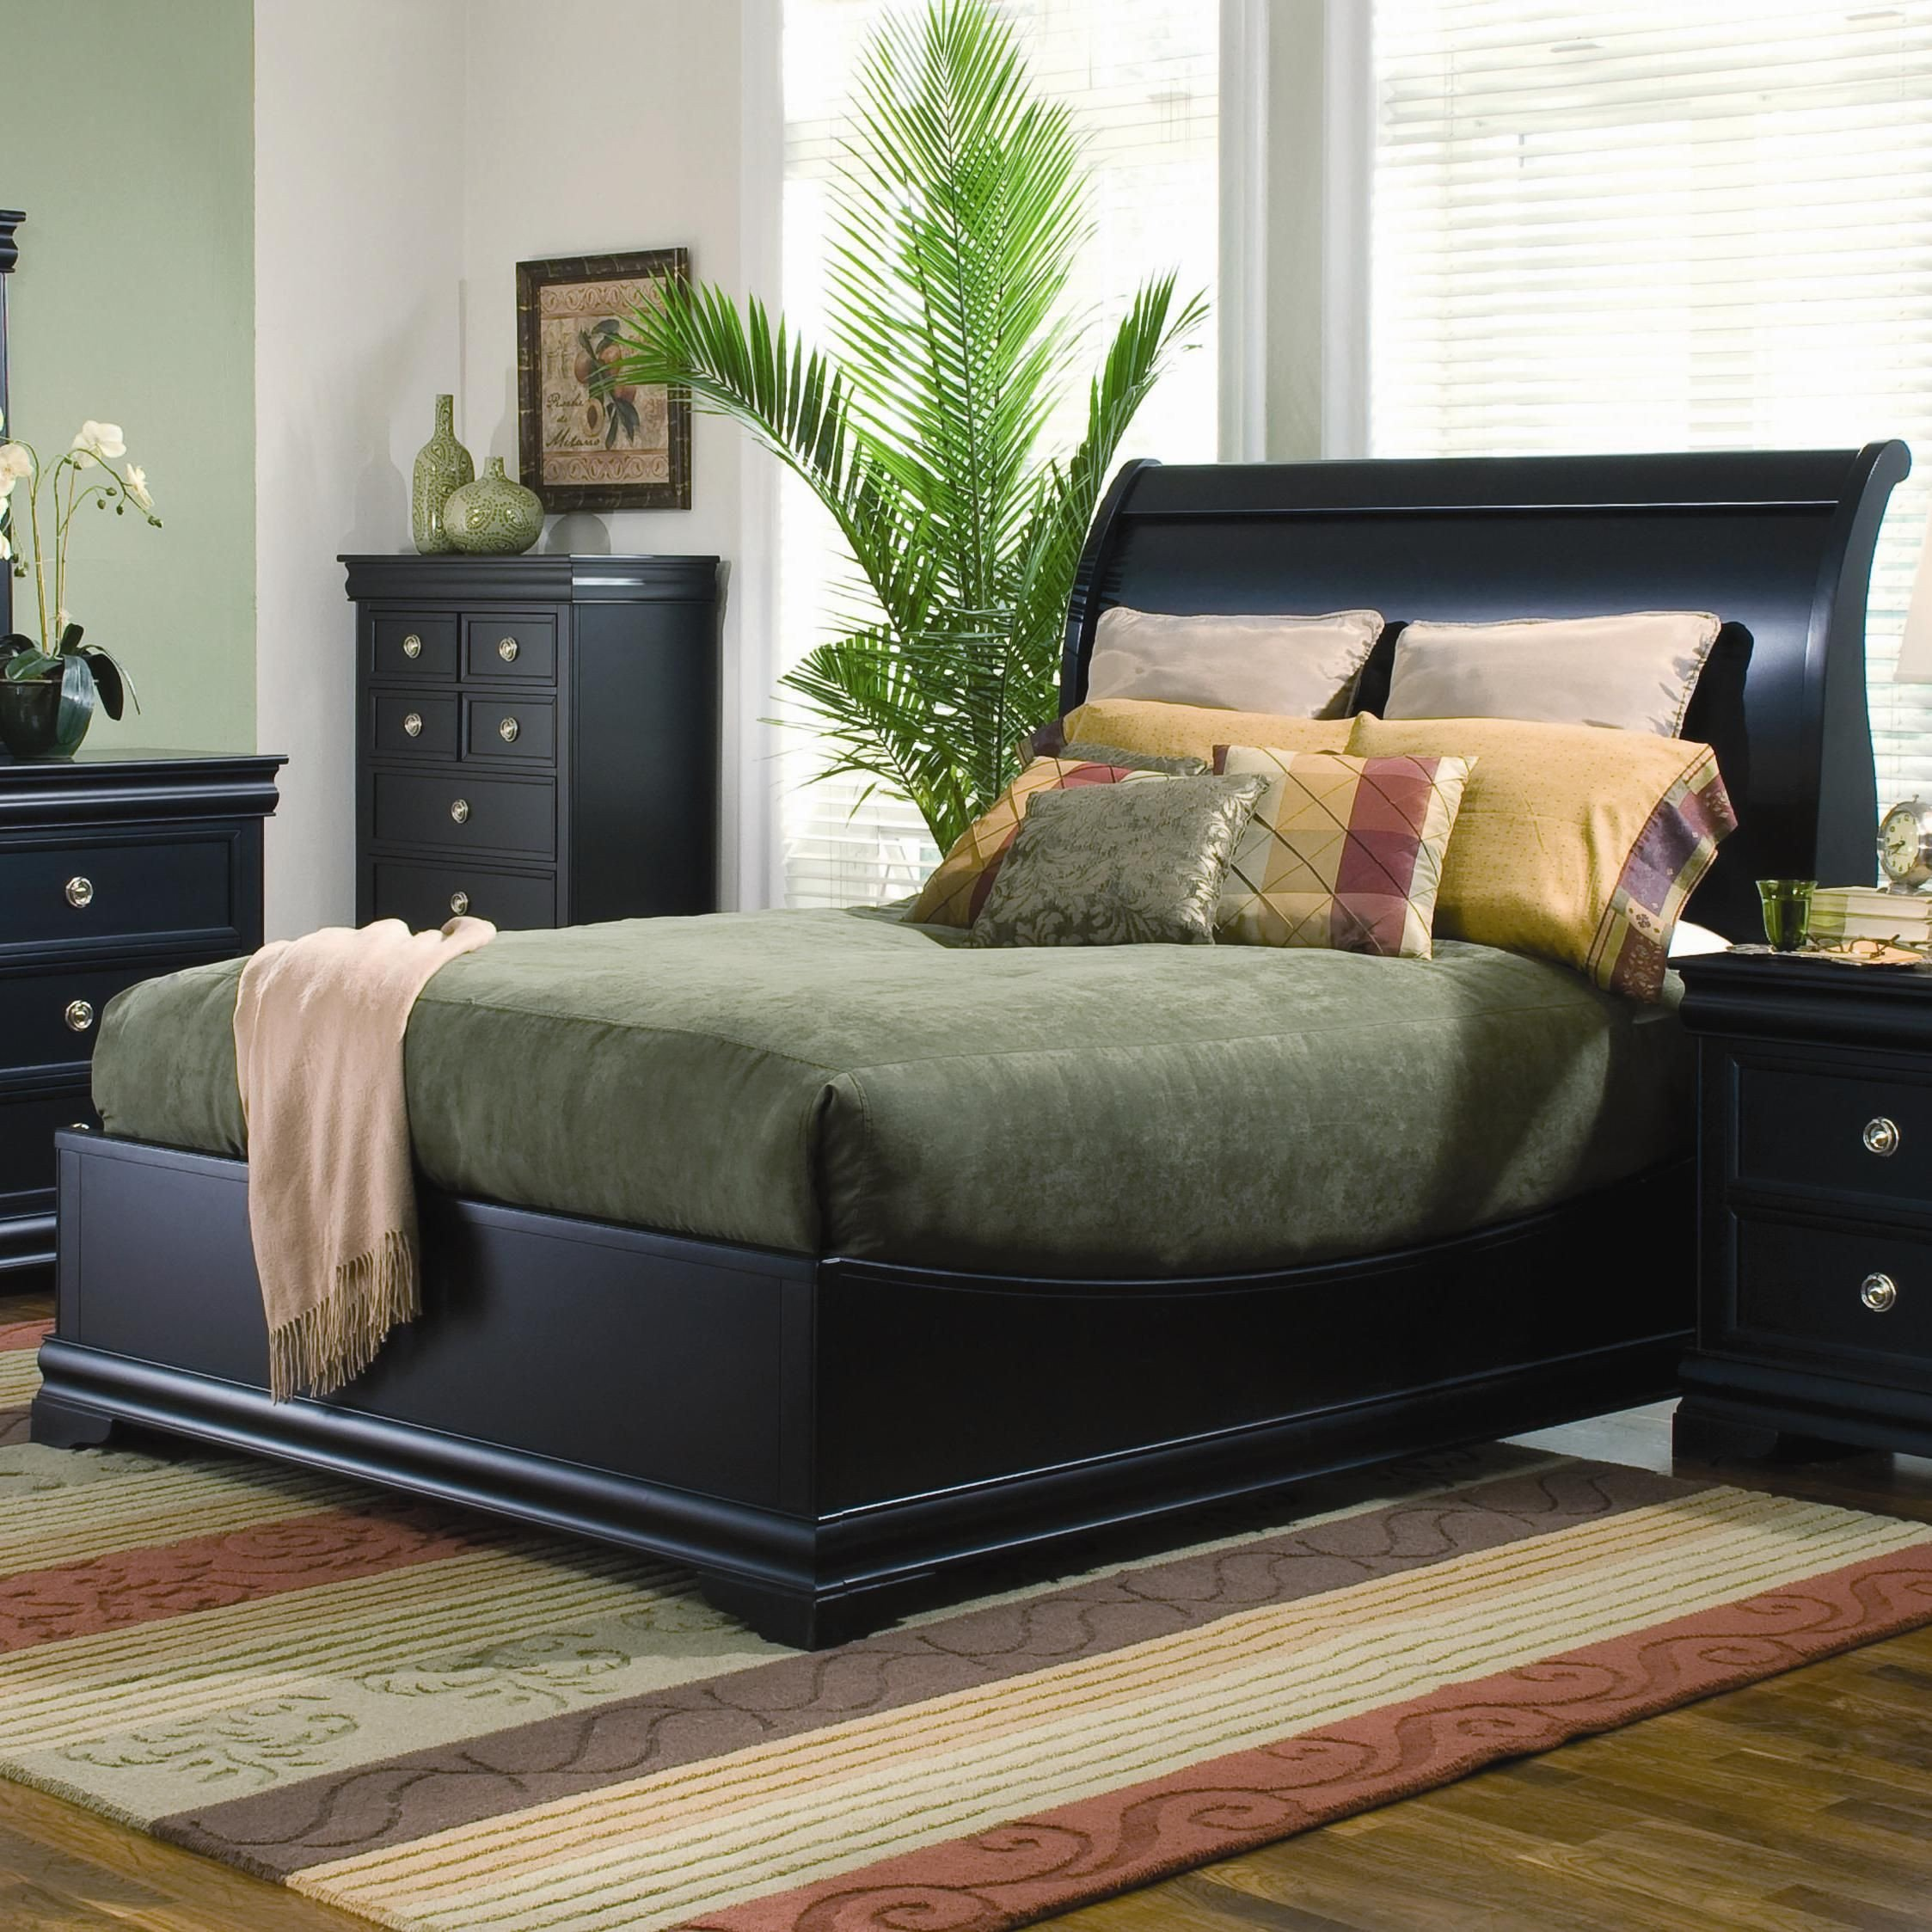 Black Twin Bedroom Set Inspirational Swept Back with Low Profile Footboard An Updated Sleigh Bed